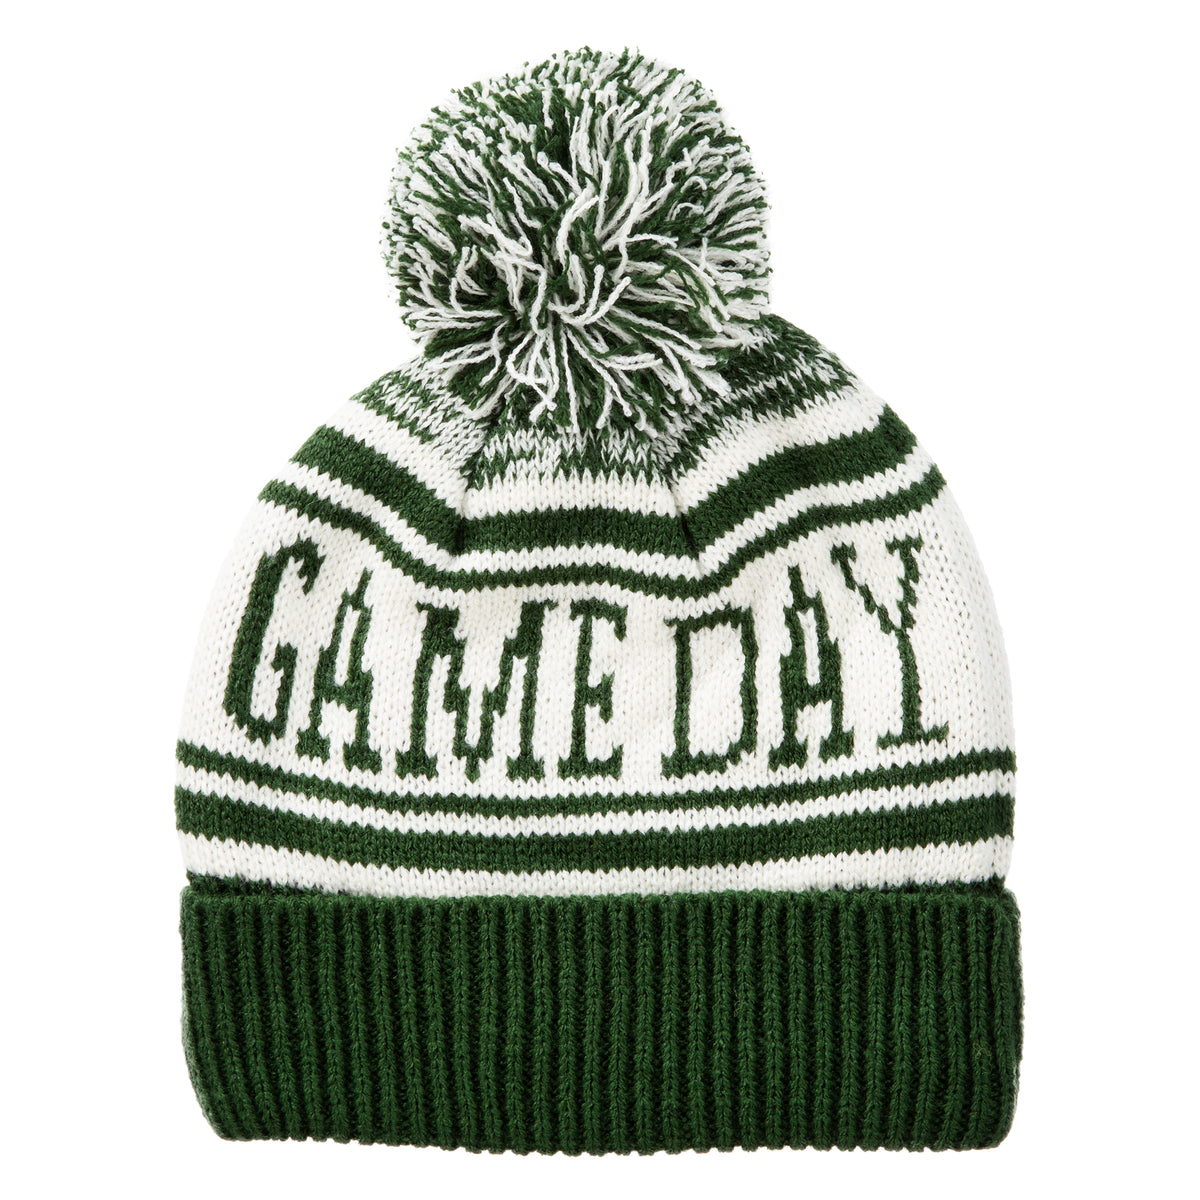 Women's Game Day Hat in Basil (Green)